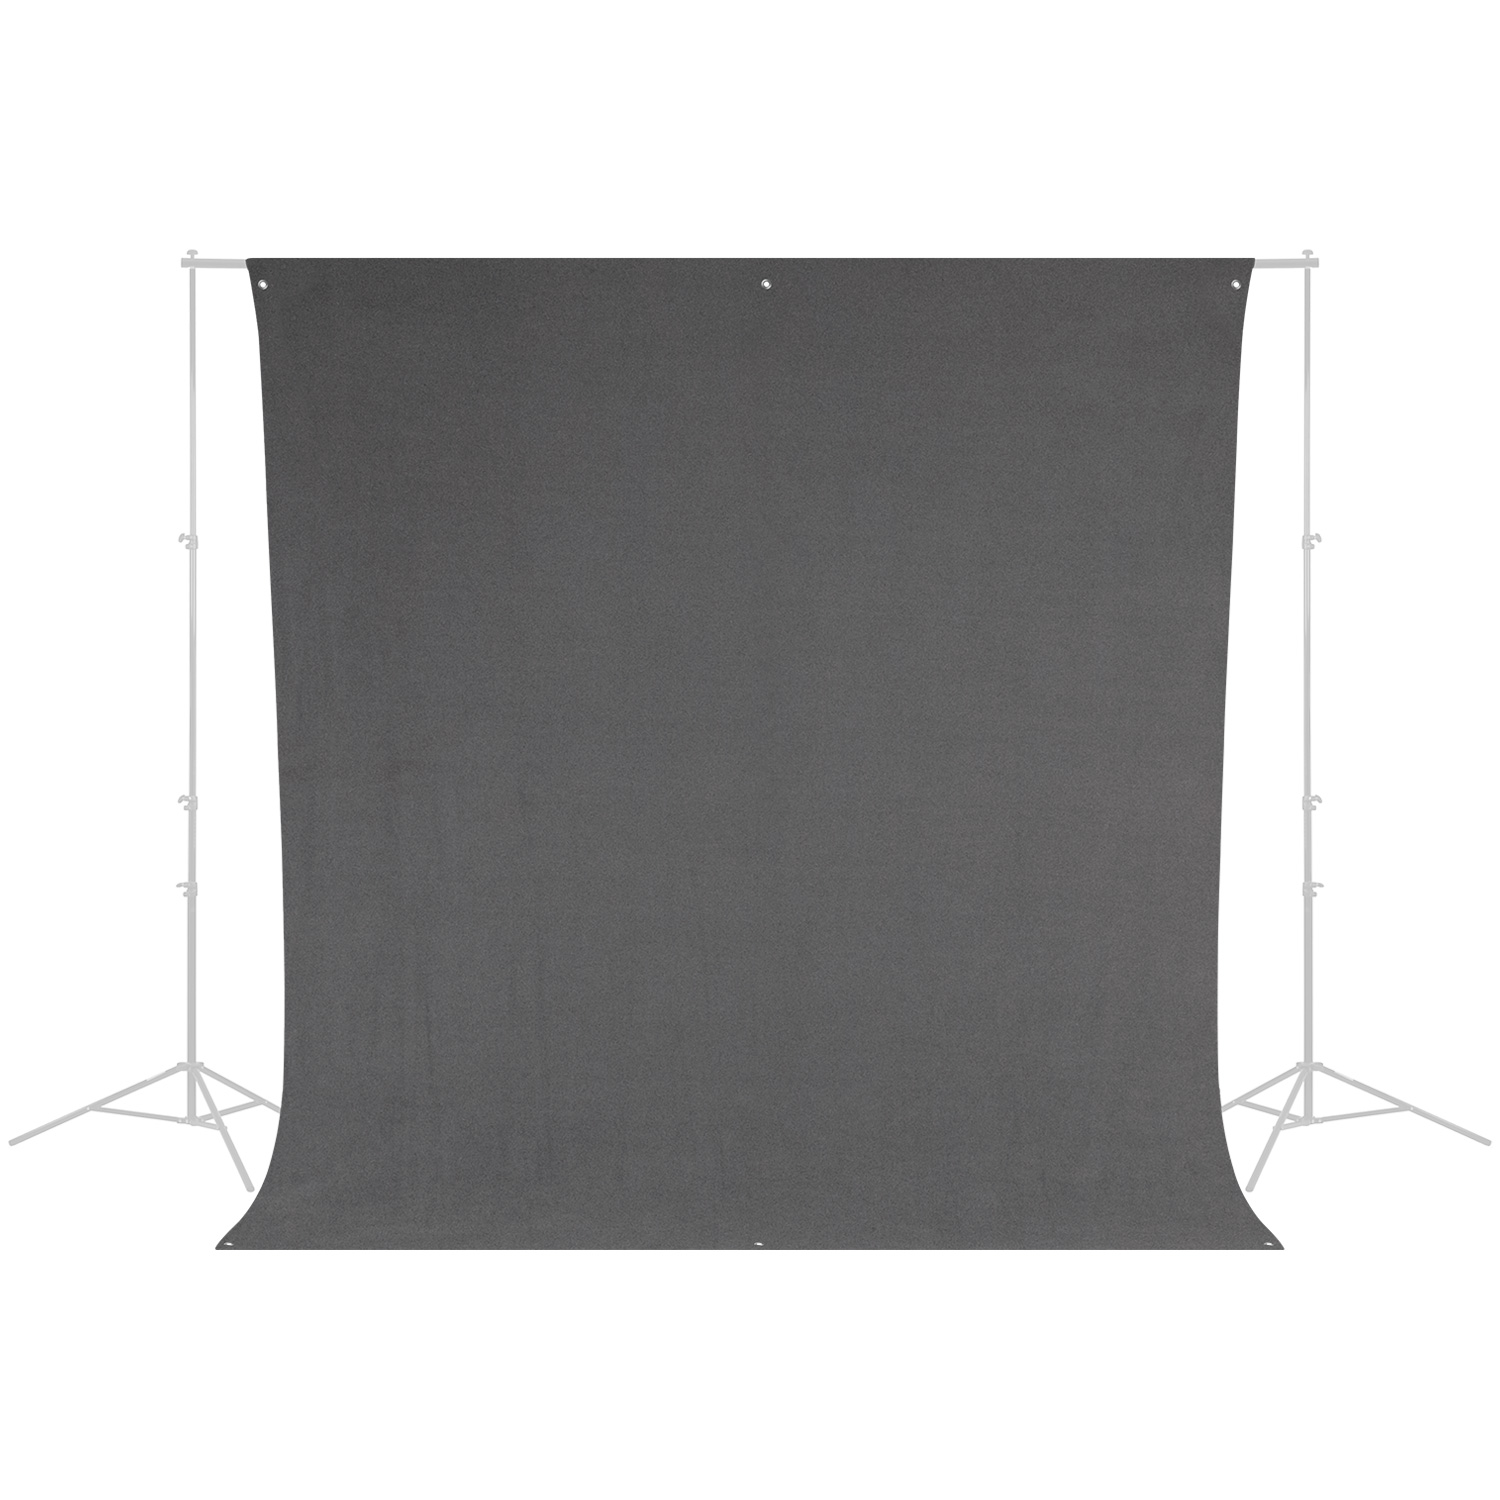 Wrinkle-Resistant Backdrop - Neutral Gray (9' x 10')